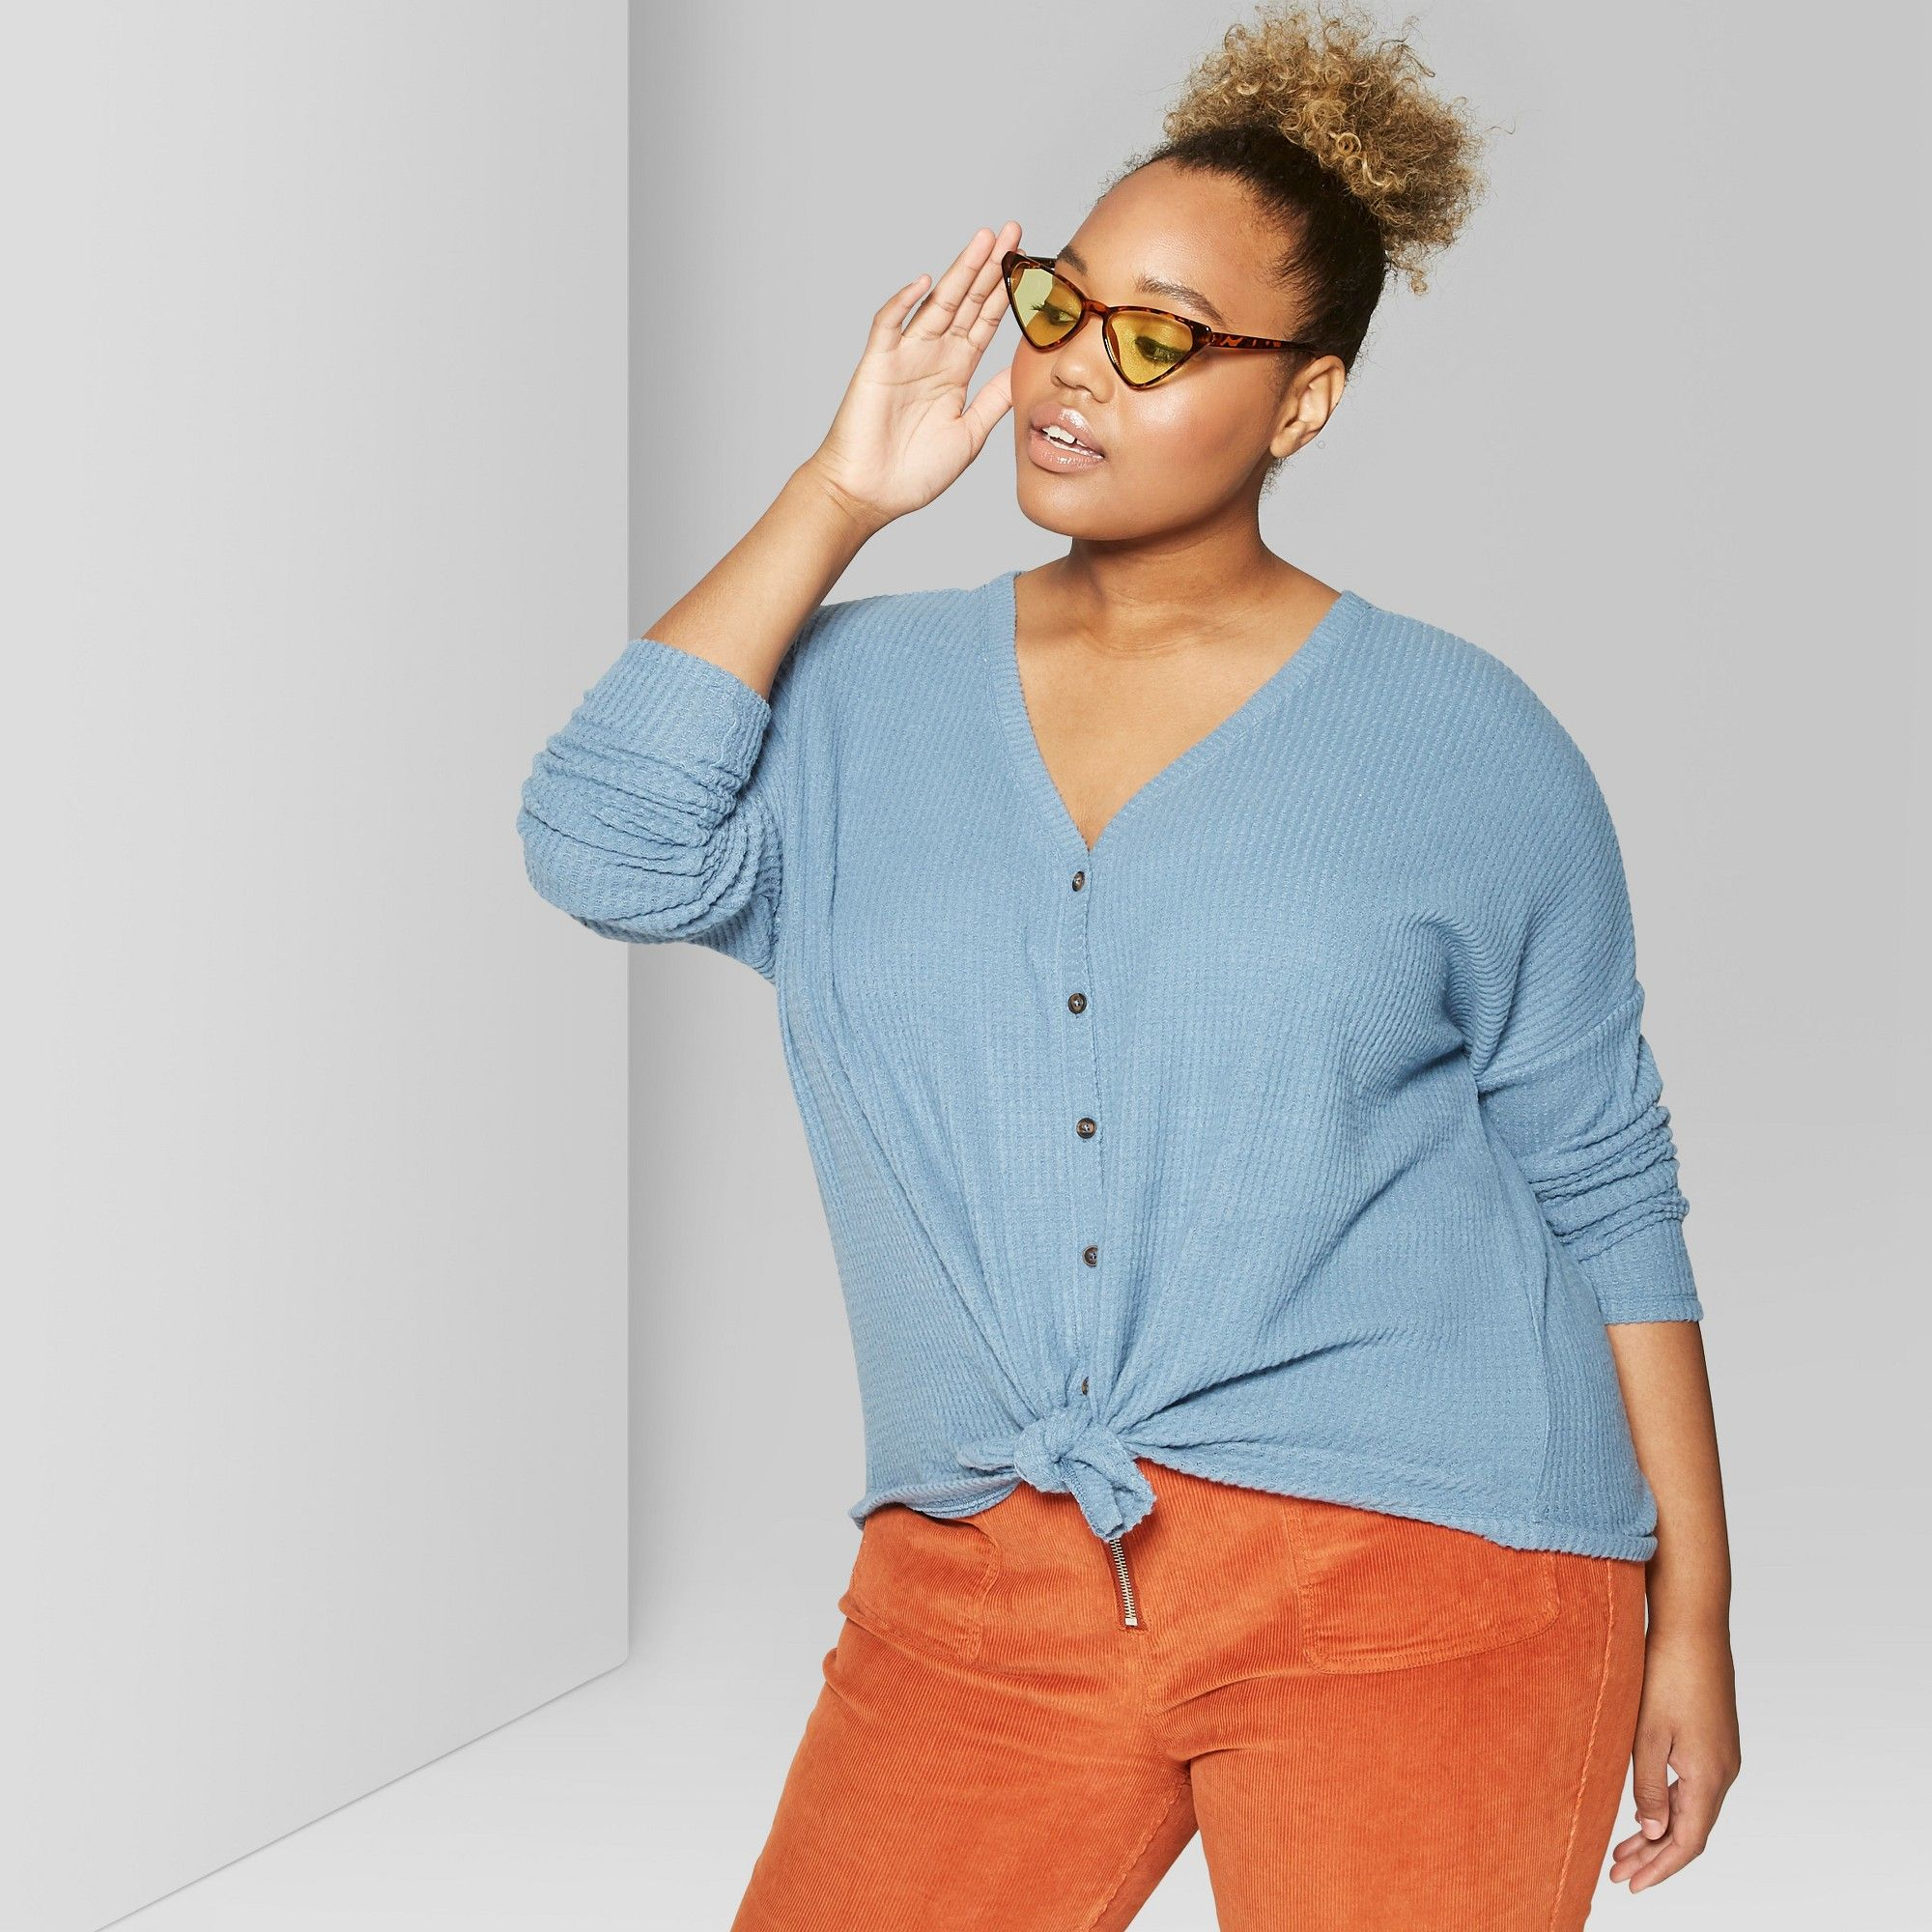 eb3364598a0 Women s Plus Size Oversized Long Sleeve Thermal Front Tie T-Shirt - Wild  Fable Denim Blue 3X